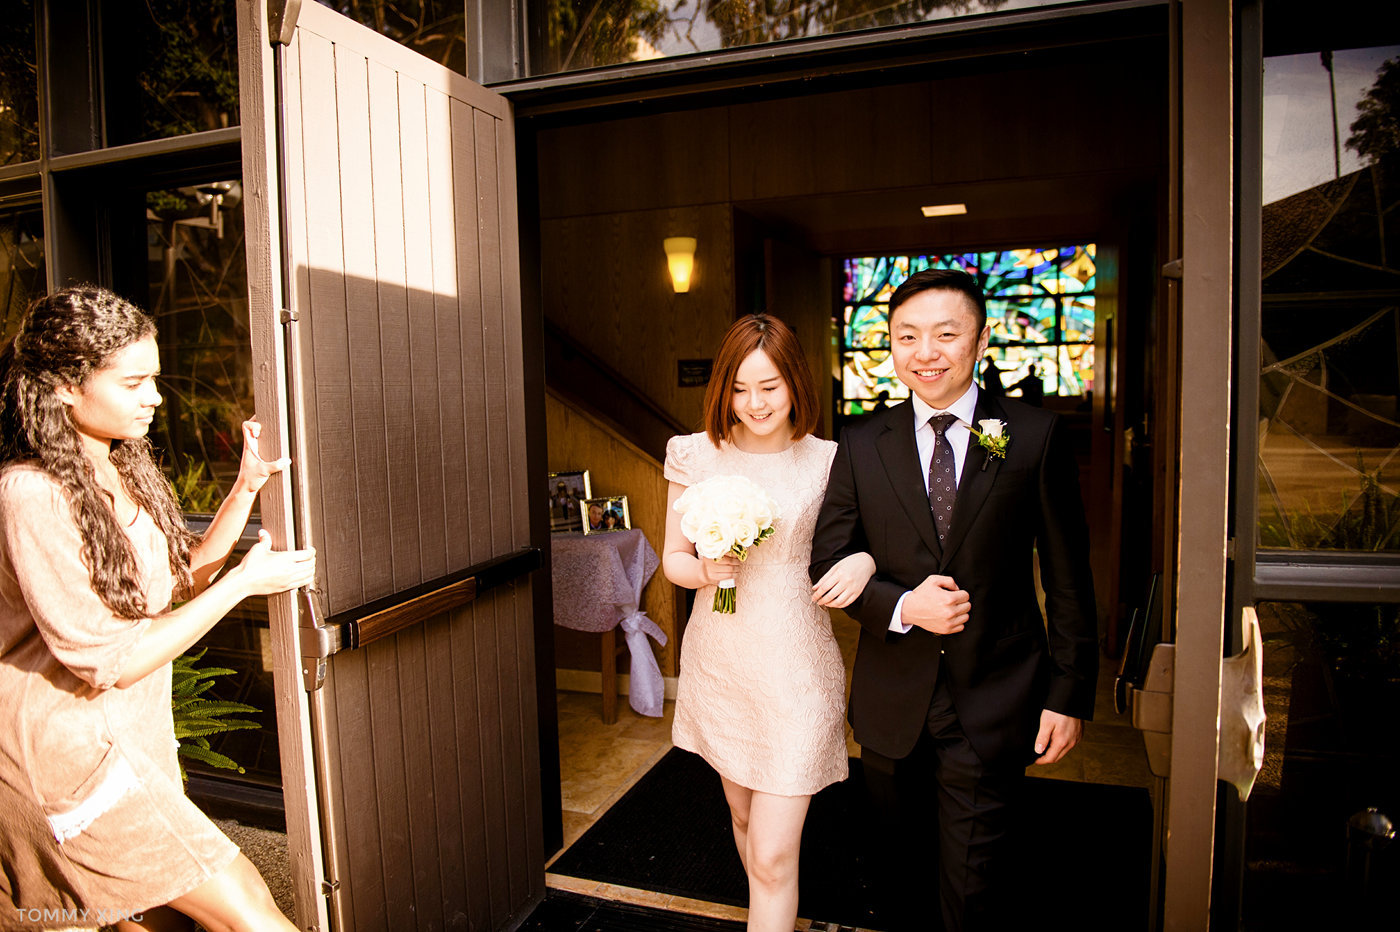 Qinglu Meng & Daozheng Chen Wedding Slideshow-169-E.JPG